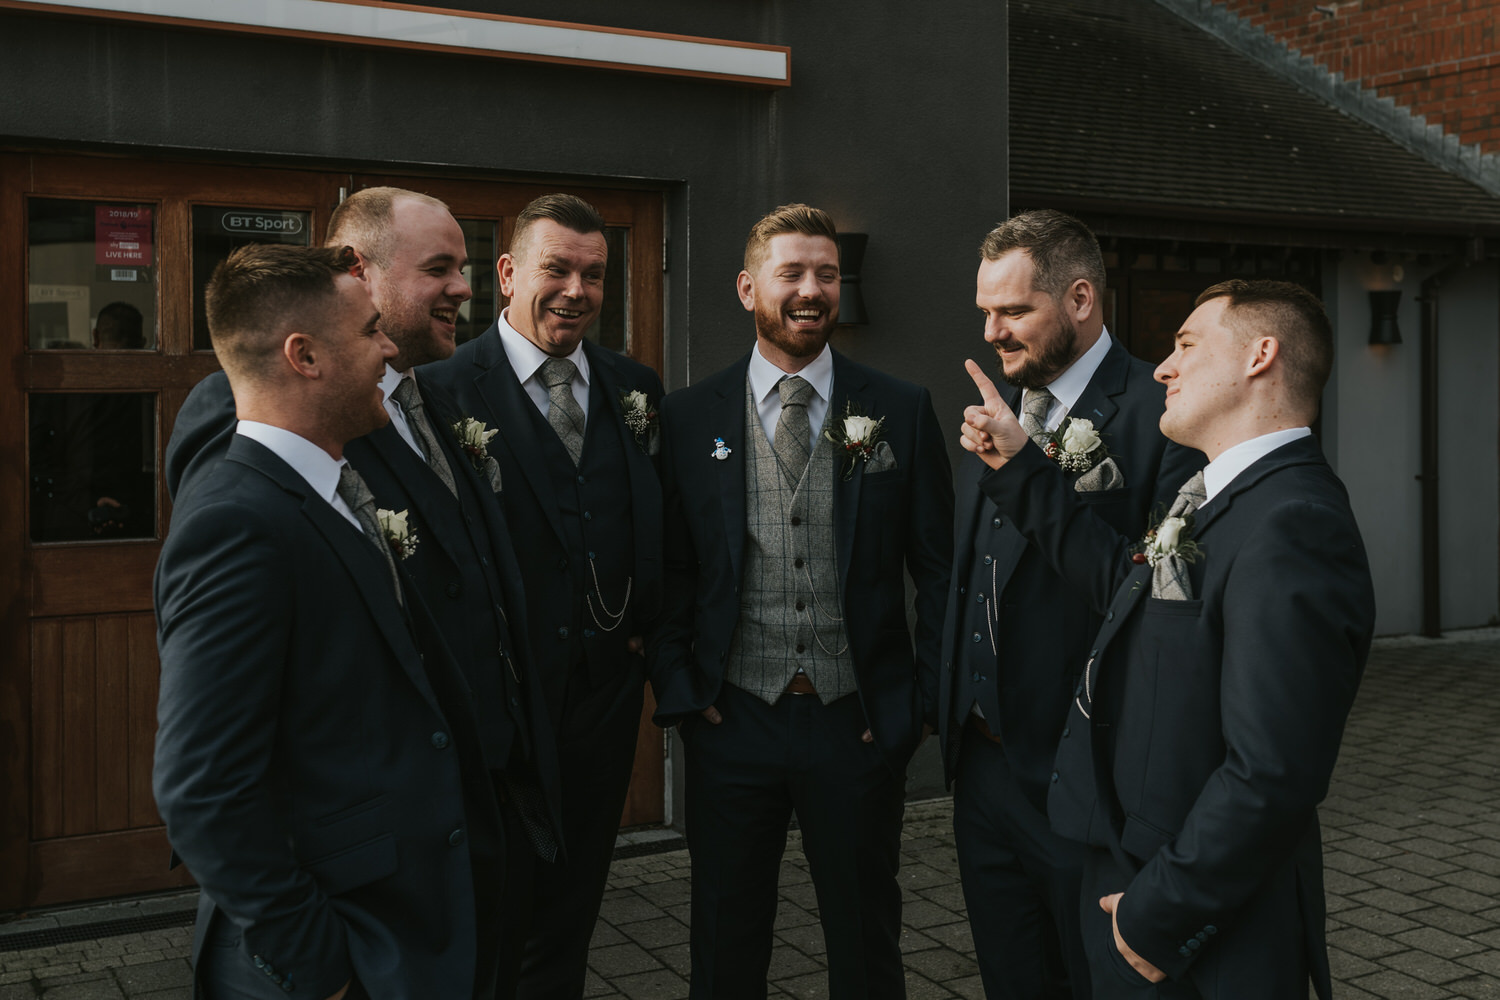 Loughshore Hotel Wedding 20